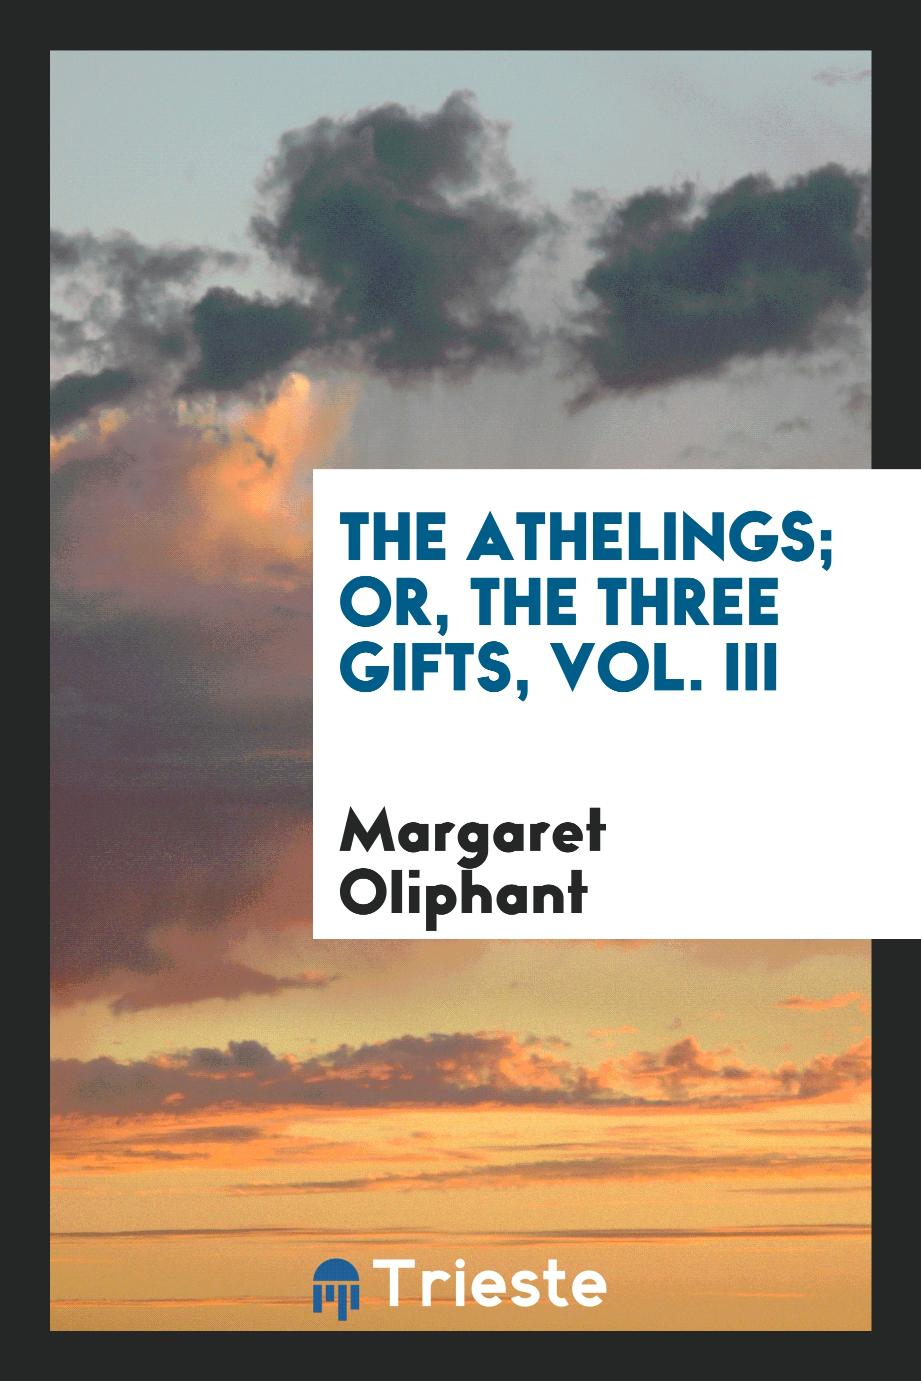 The Athelings; or, The three gifts, Vol. III